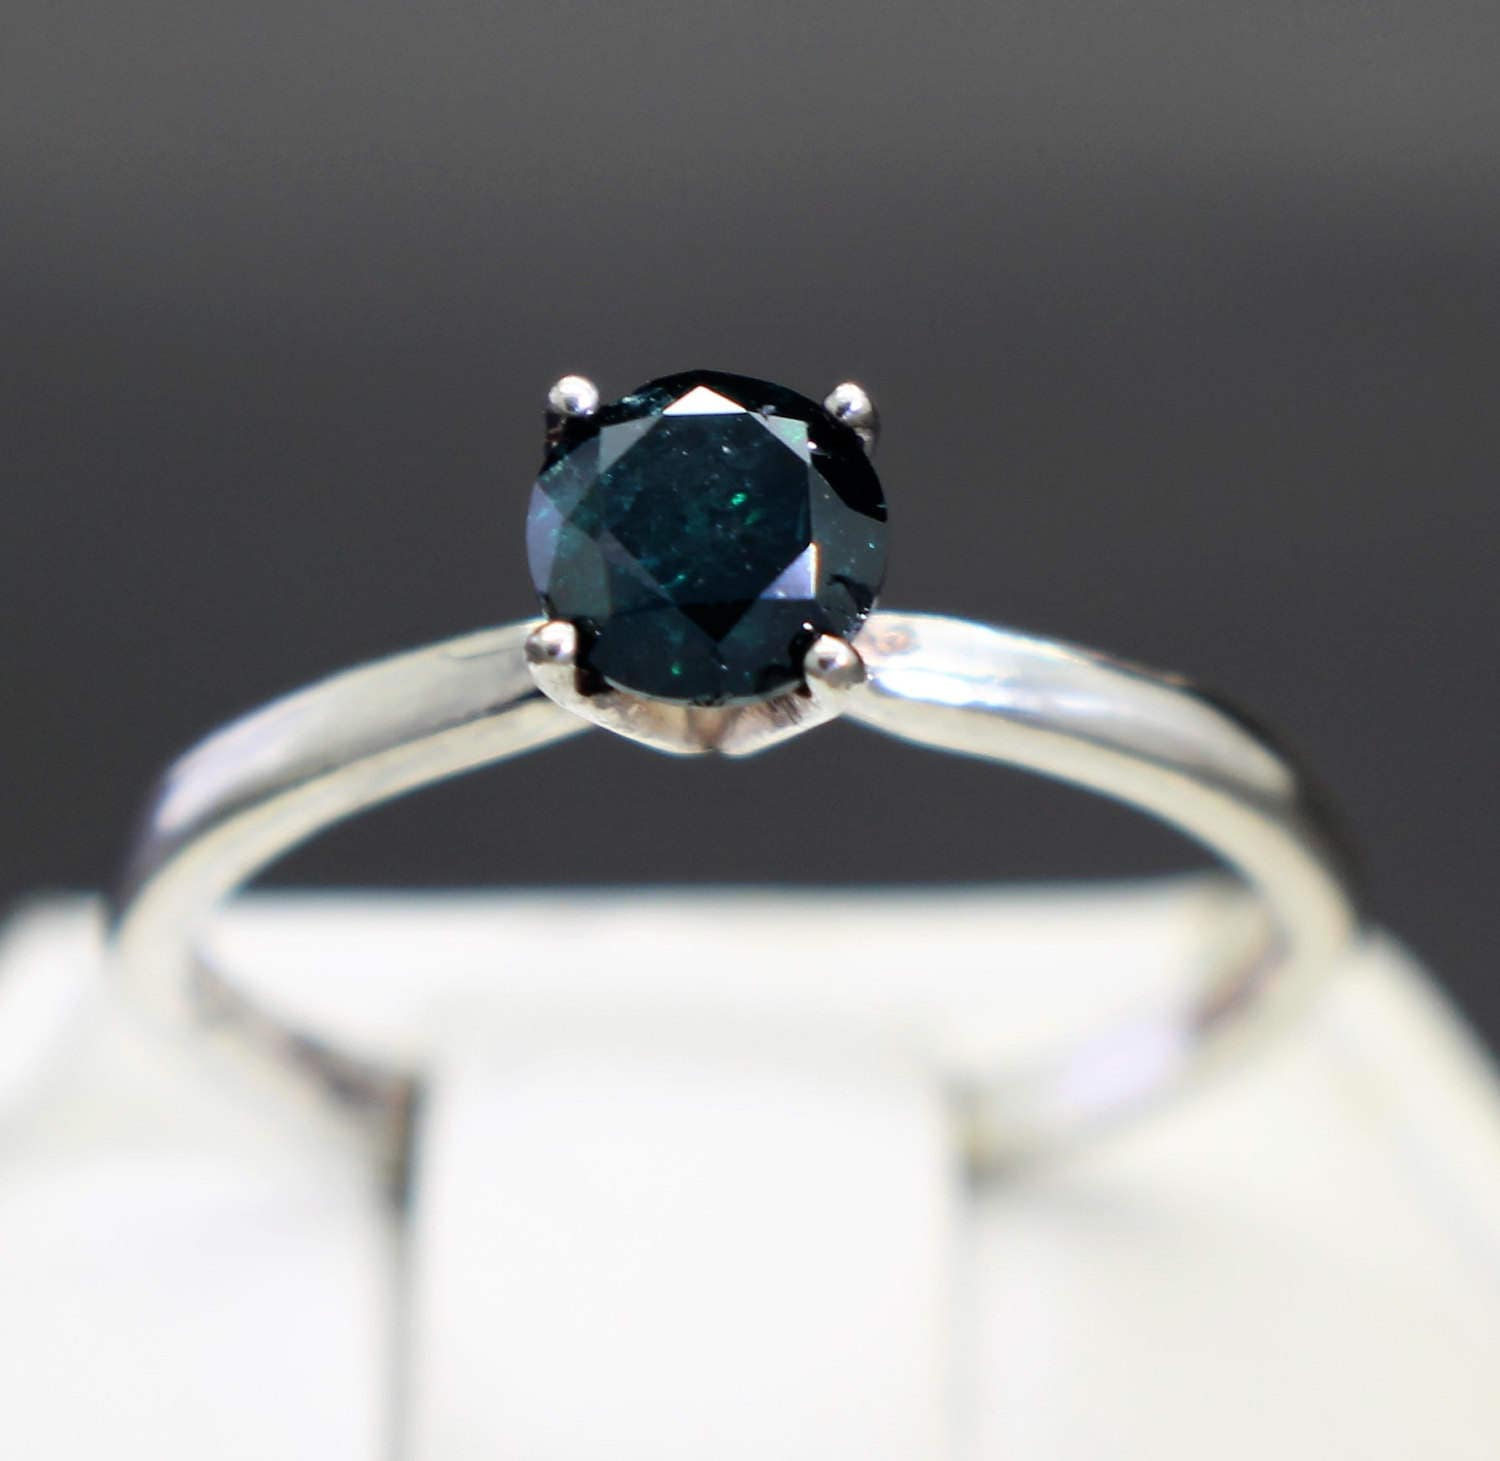 rings engagement sapphires emerald exchange diamond blue dark london shutterstock